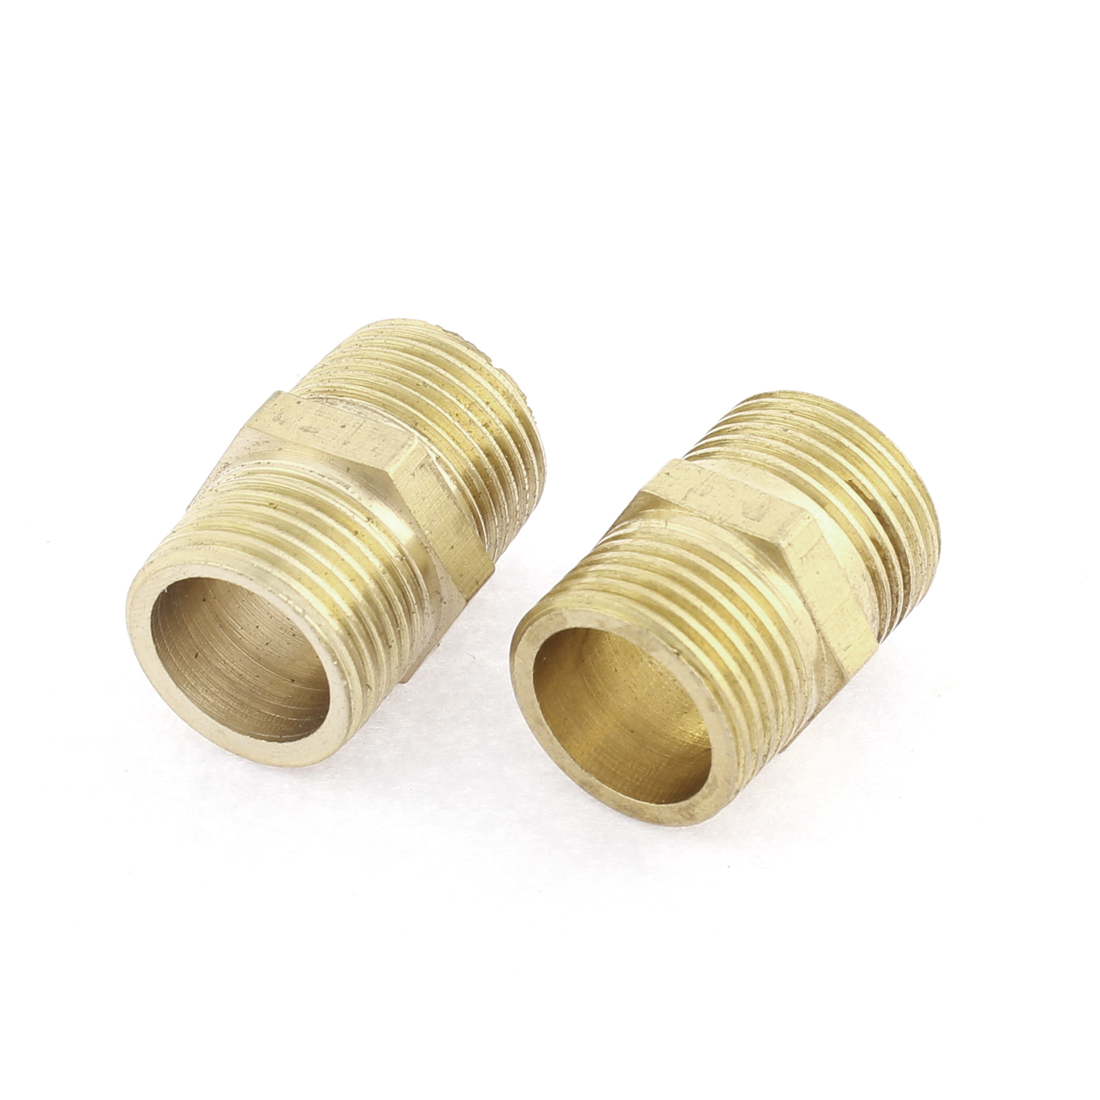 3/8BSP Male Thread Hex Nipple Pipe Fitting Coupler Connector 2pcs